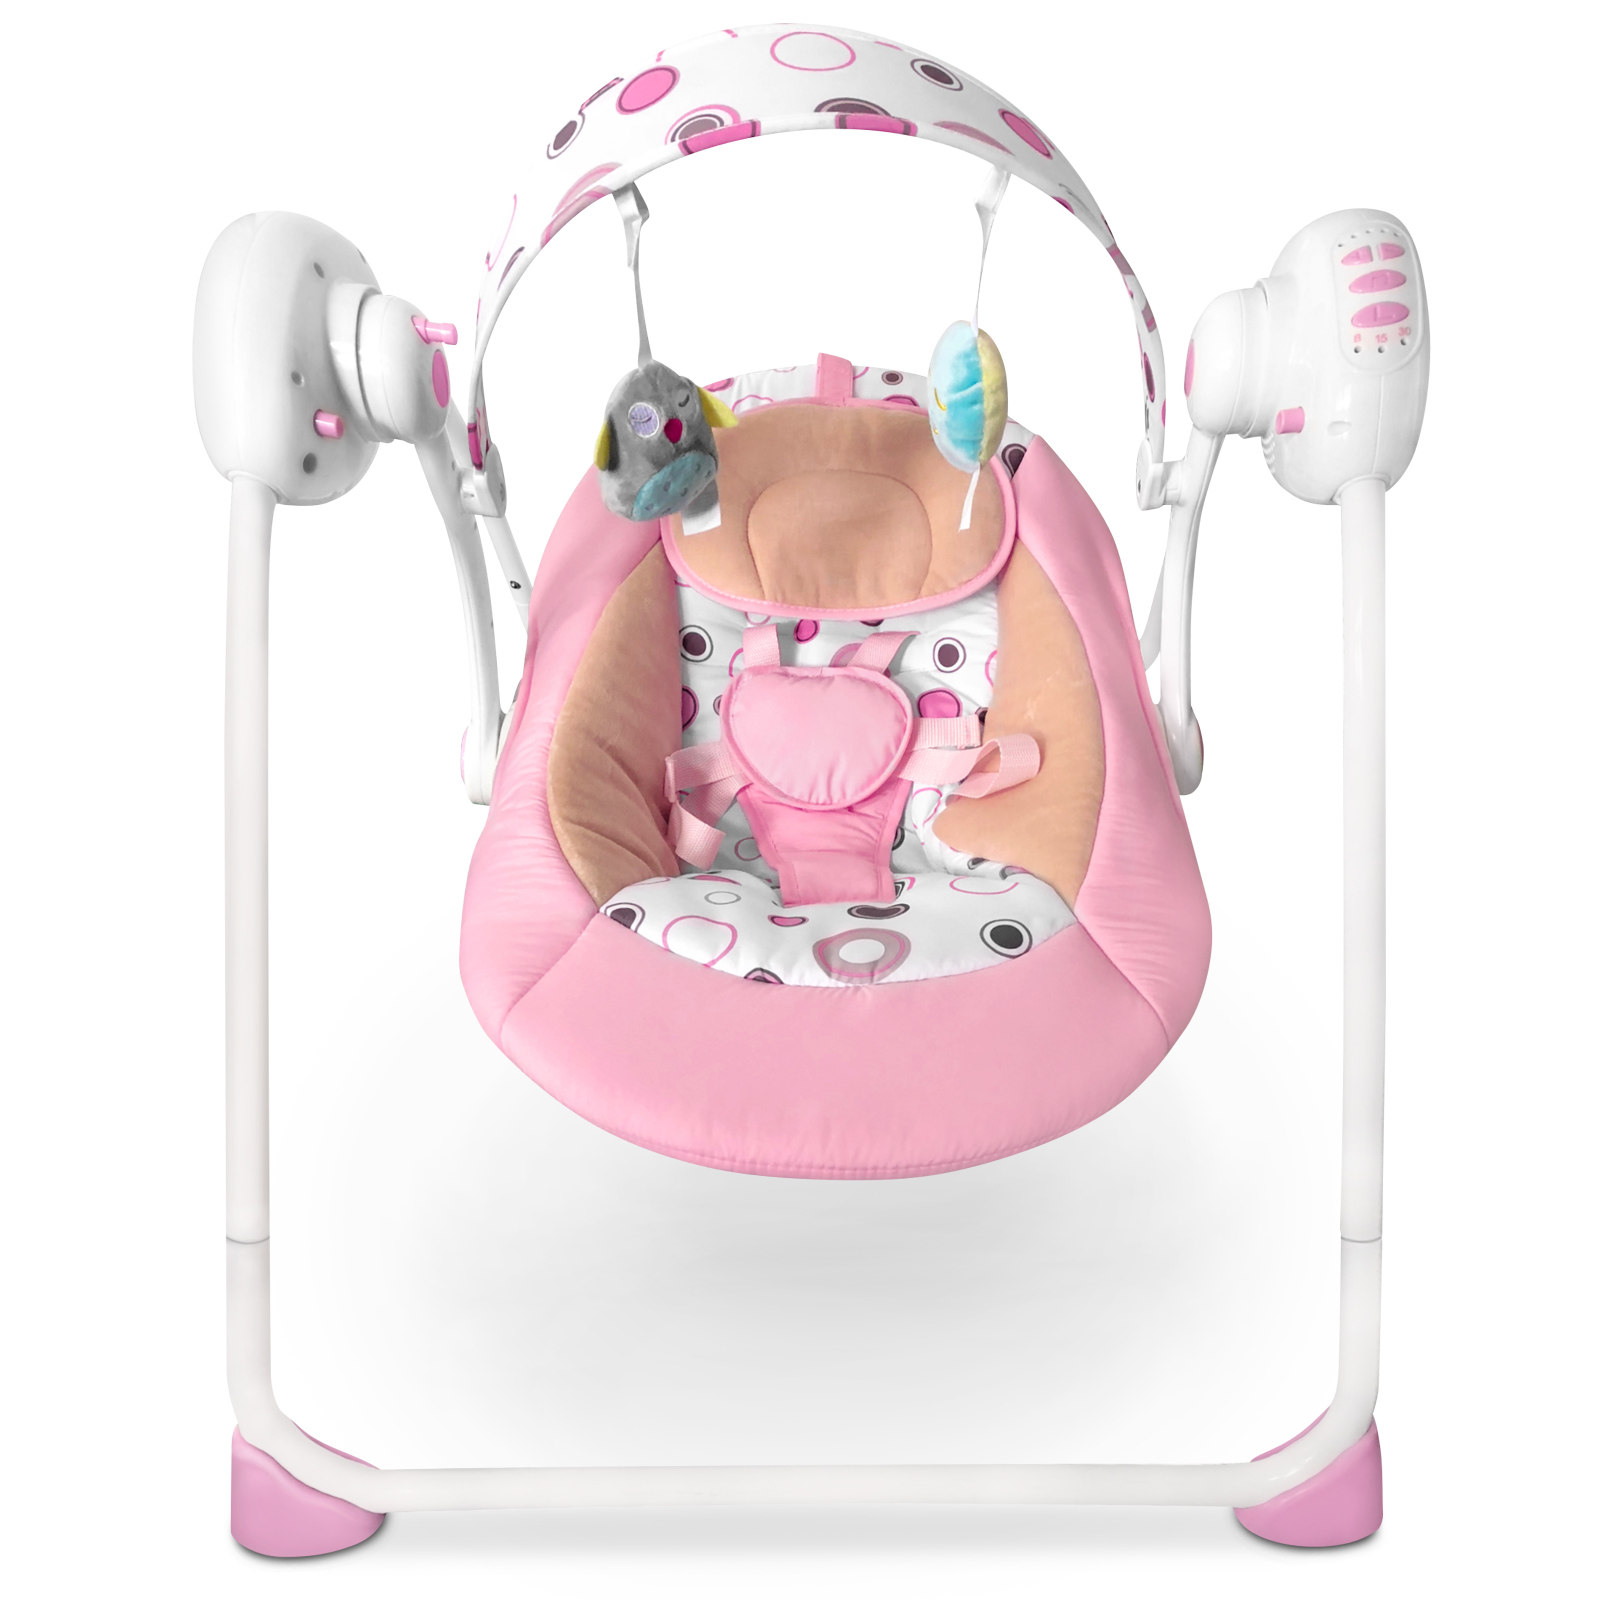 Baby-Bouncer-Music-MP3-Swing-Rocking-Chair-Infant-Entertainment-Toys-U12-Months thumbnail 14